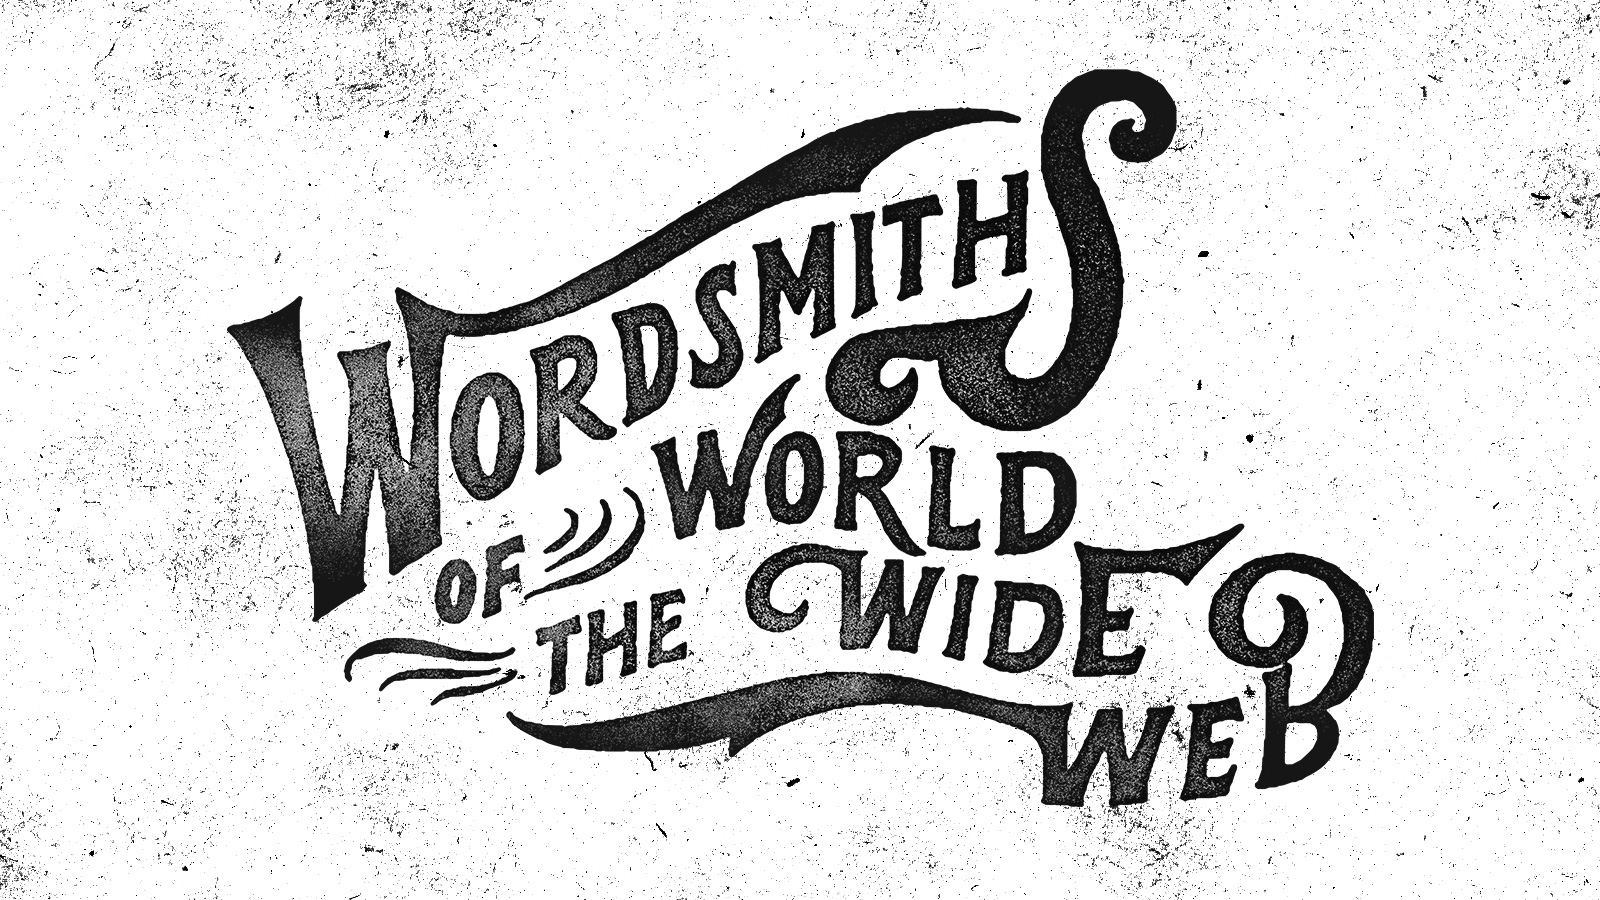 Meet 10 Hand Lettering Artists You Should Know | Inspirationfeed